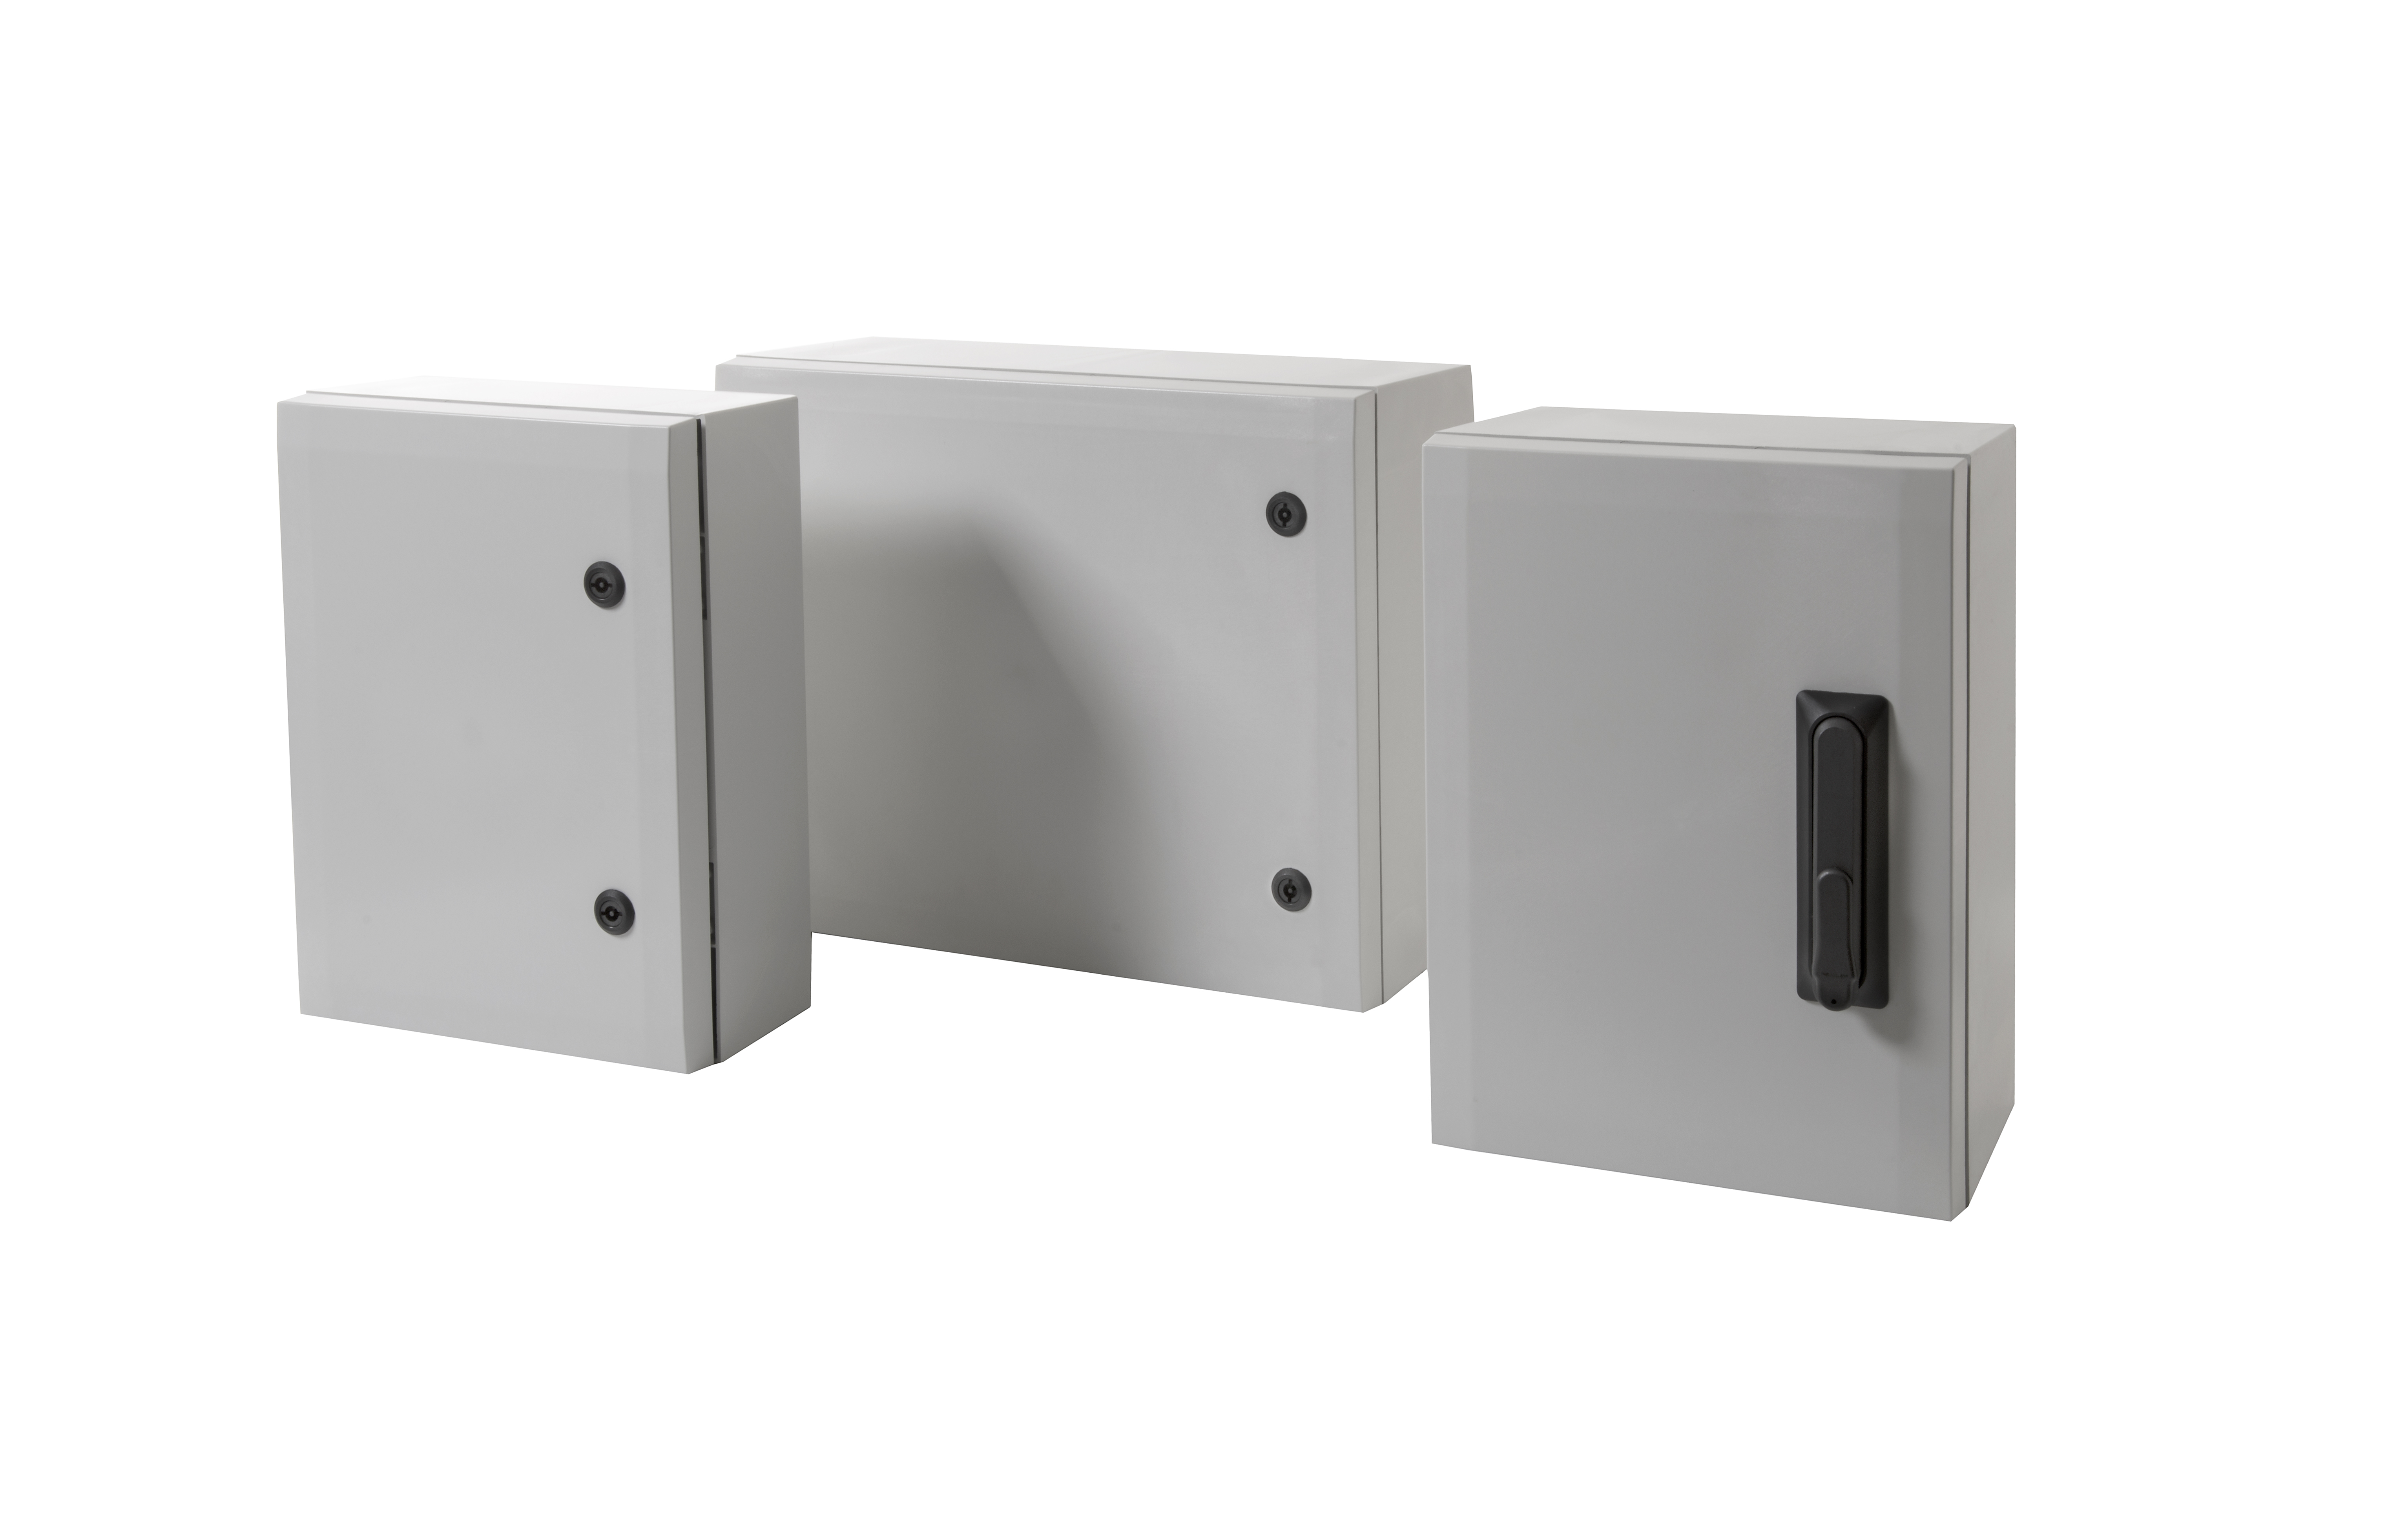 Large enclosures sized up 32x24x10 ARCA IEC breaks size barrier